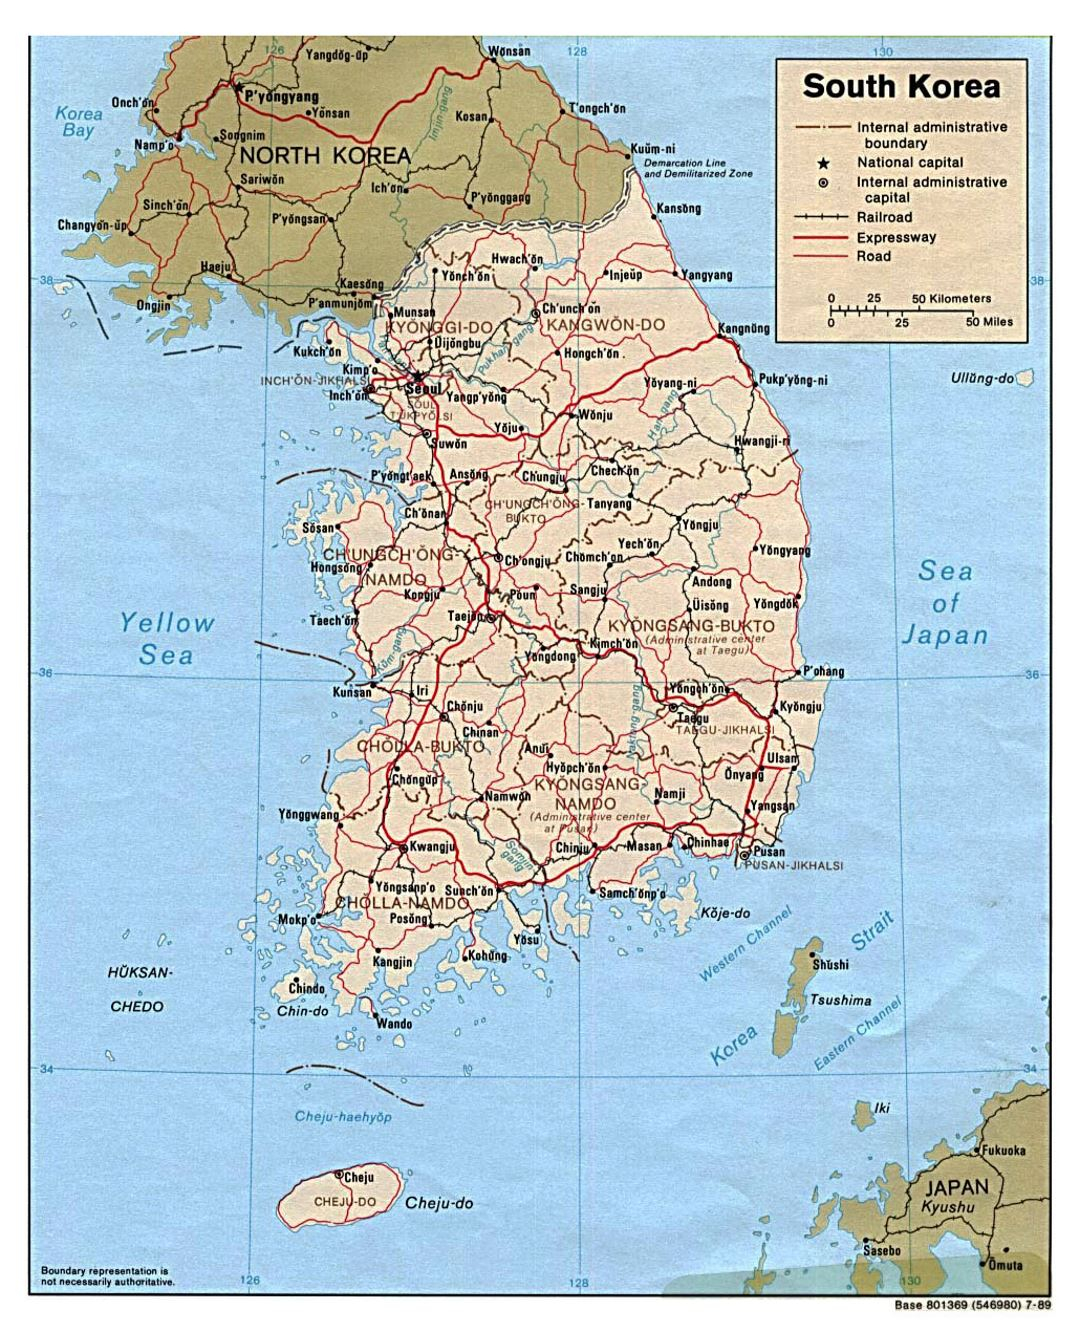 Detailed Political And Administrative Map Of South Korea